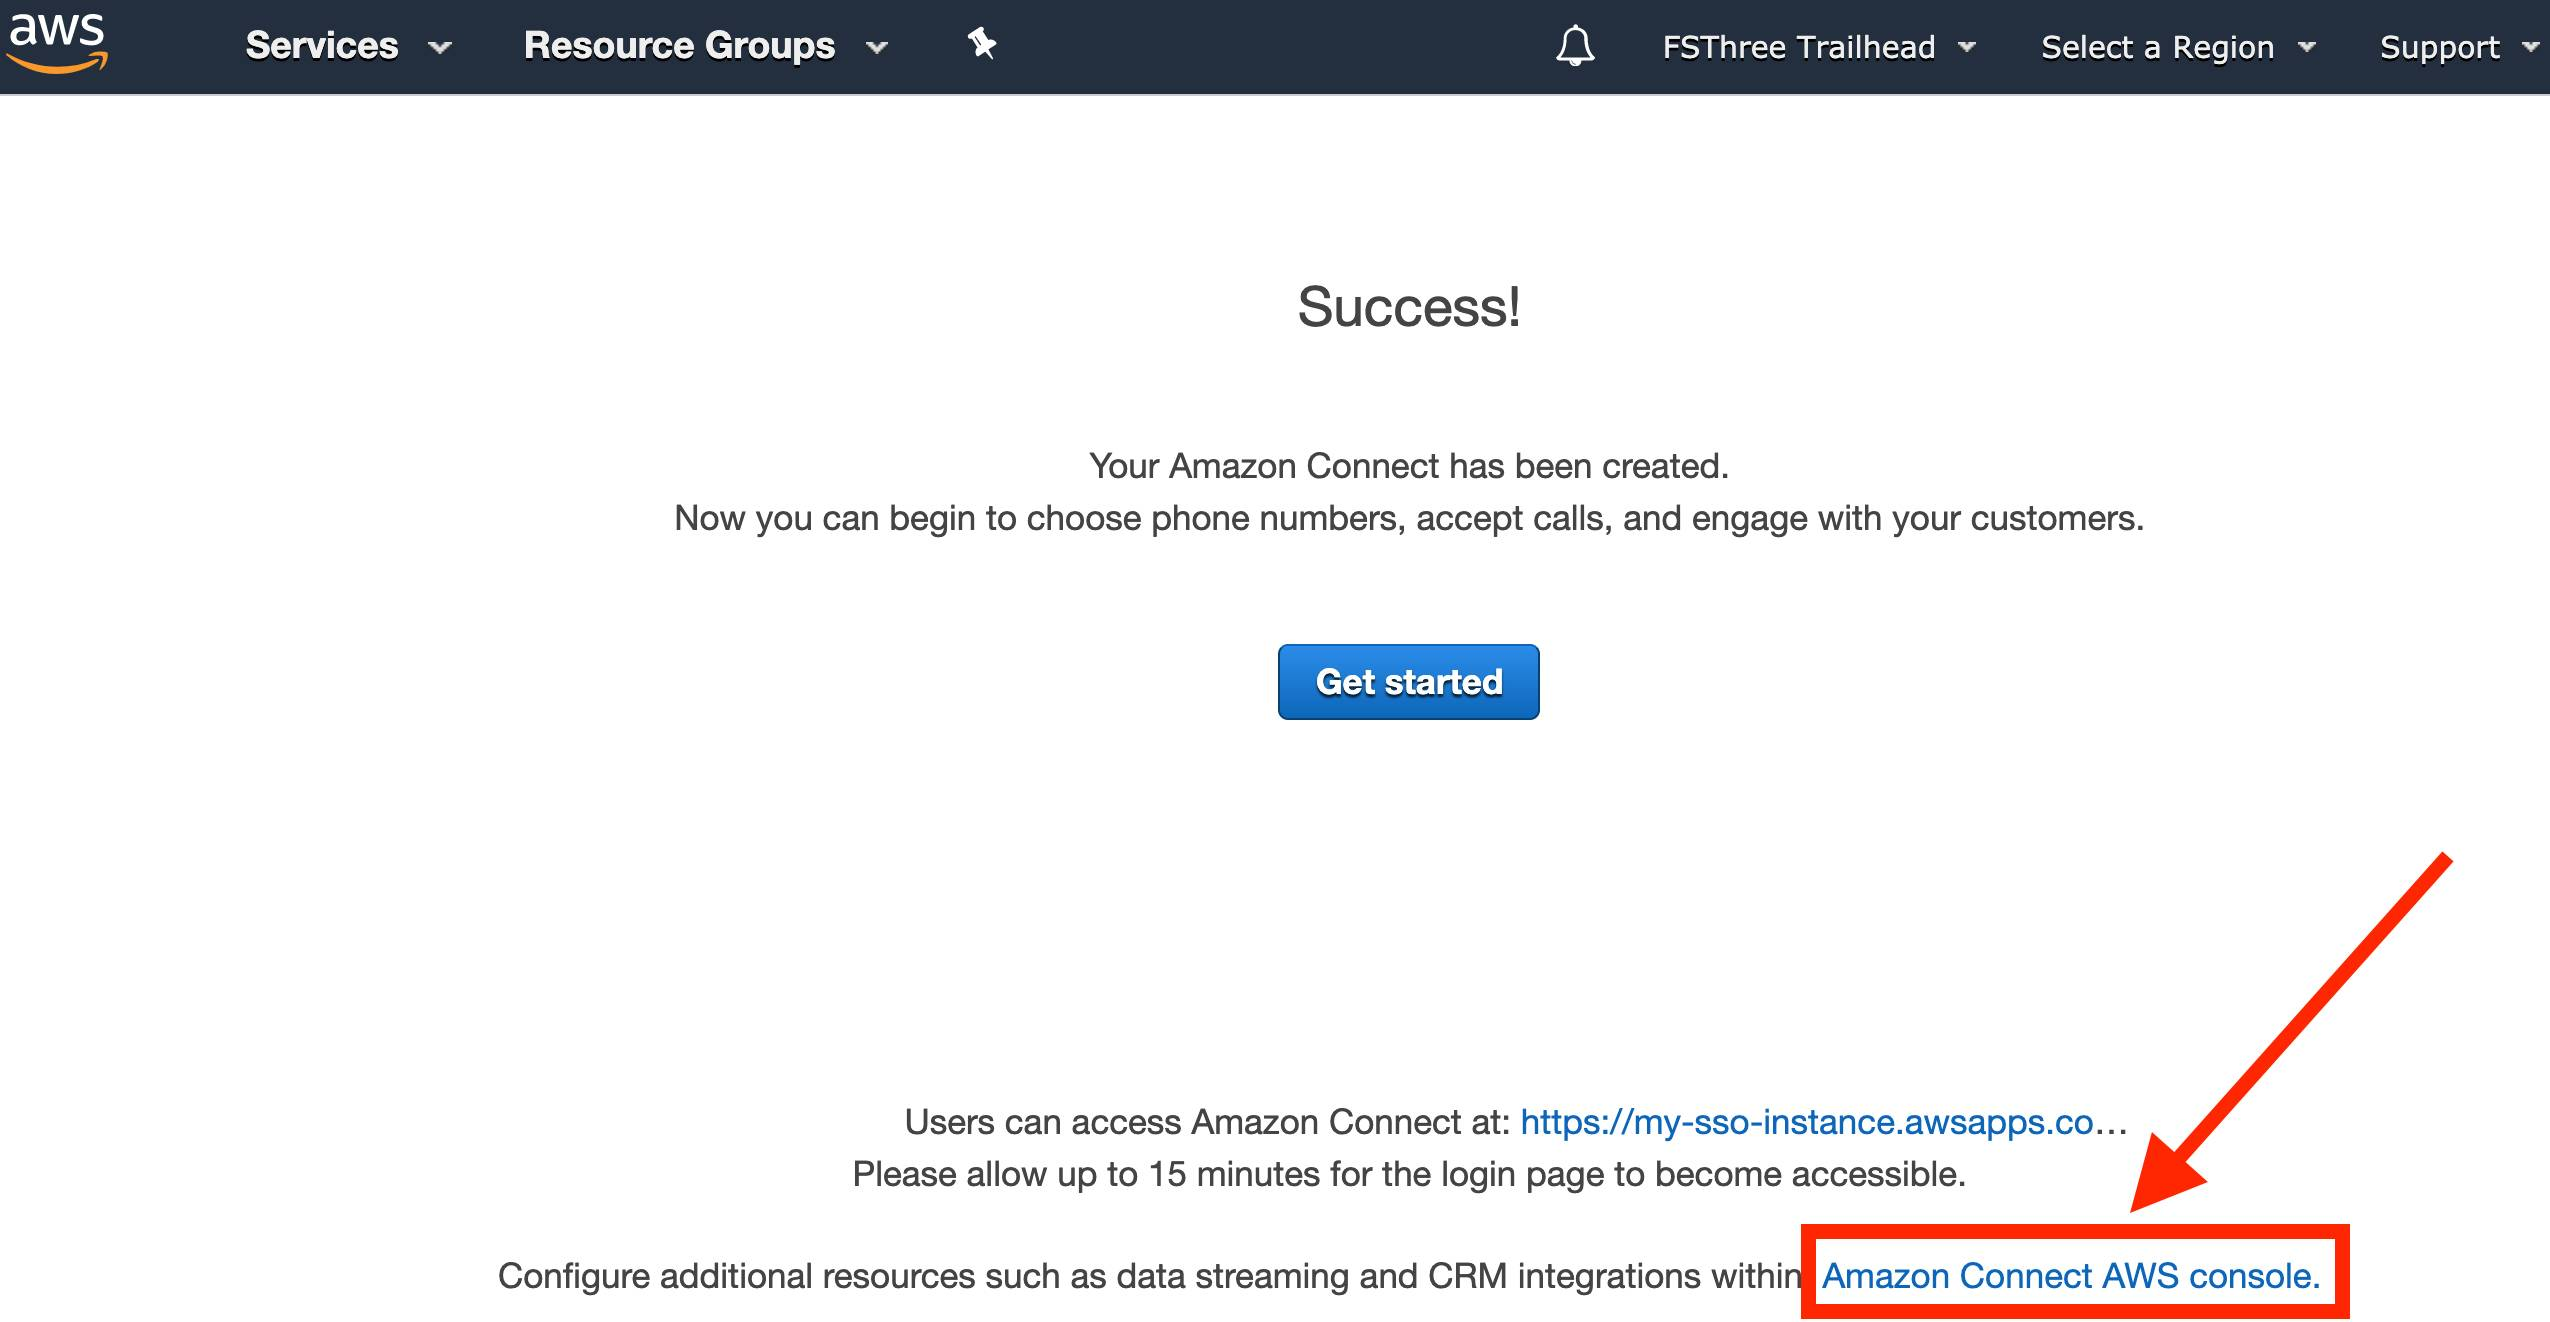 Amazon Connect instance creation success screen, with the link back to the Amazon Connect AWS console highlighted at the bottom with a red box and arrow